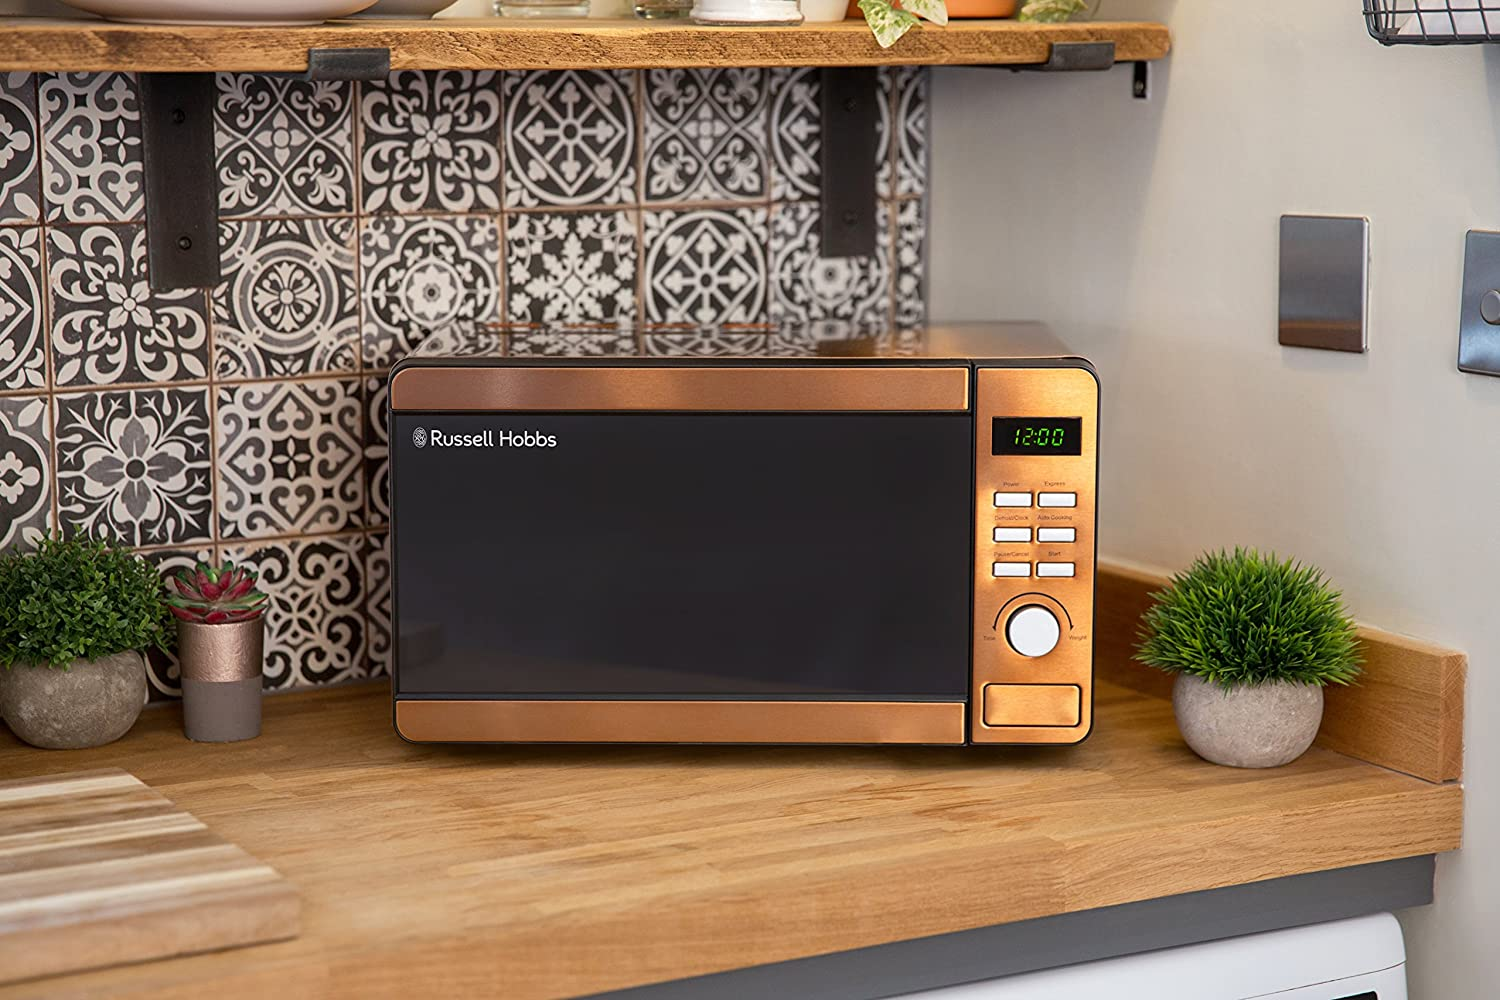 Russell Hobbs Copper Microwave